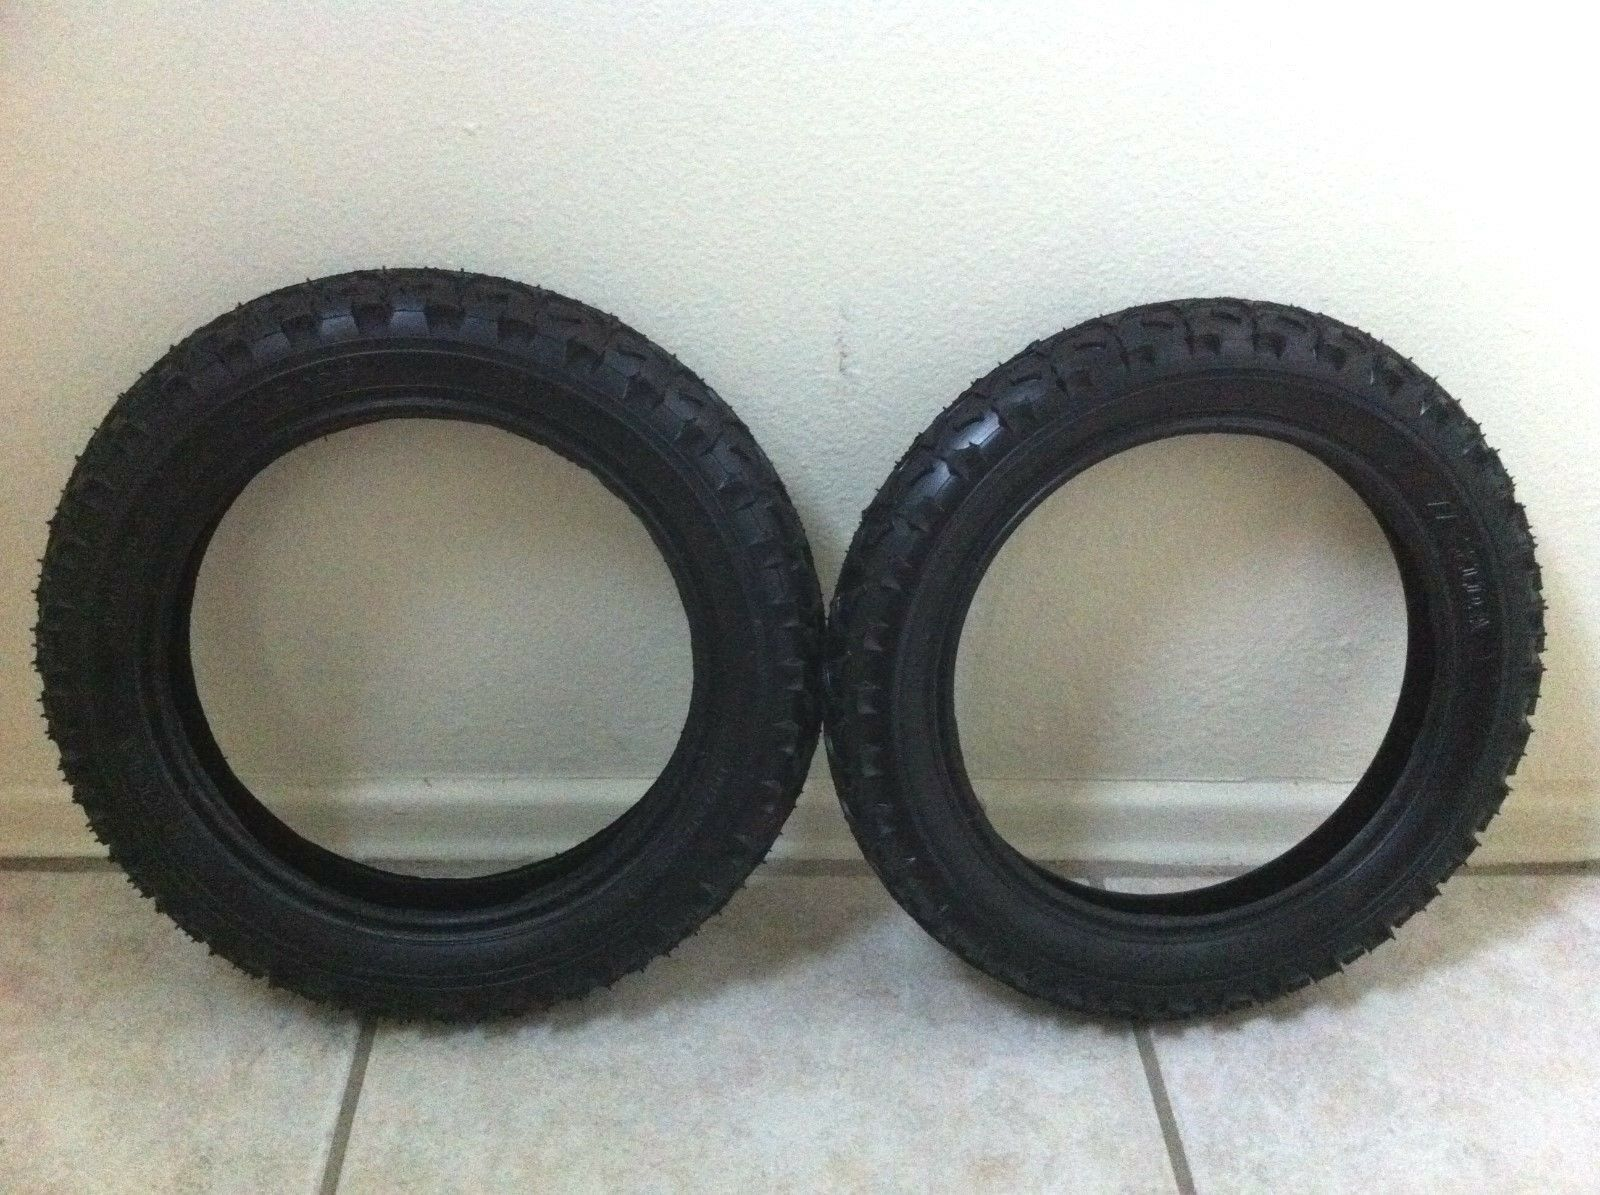 BICYCLE 2-TIRES 2-TUBES 12  x 2.125 BMX CRUSIER LOWRIDER BIKES MTB CYCLING NEW